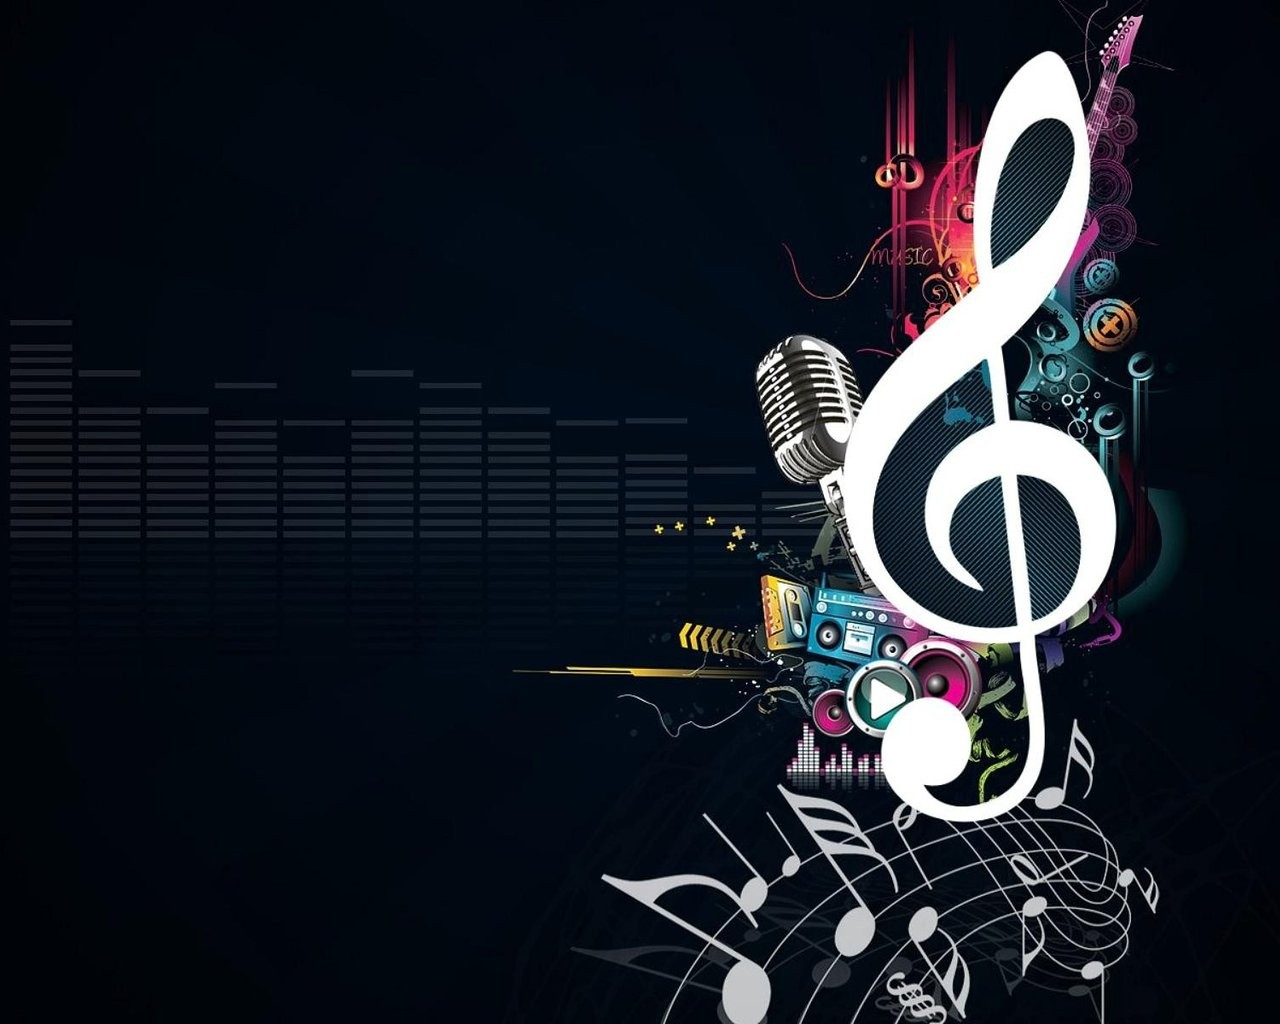 creative music platforms PPT Backgrounds